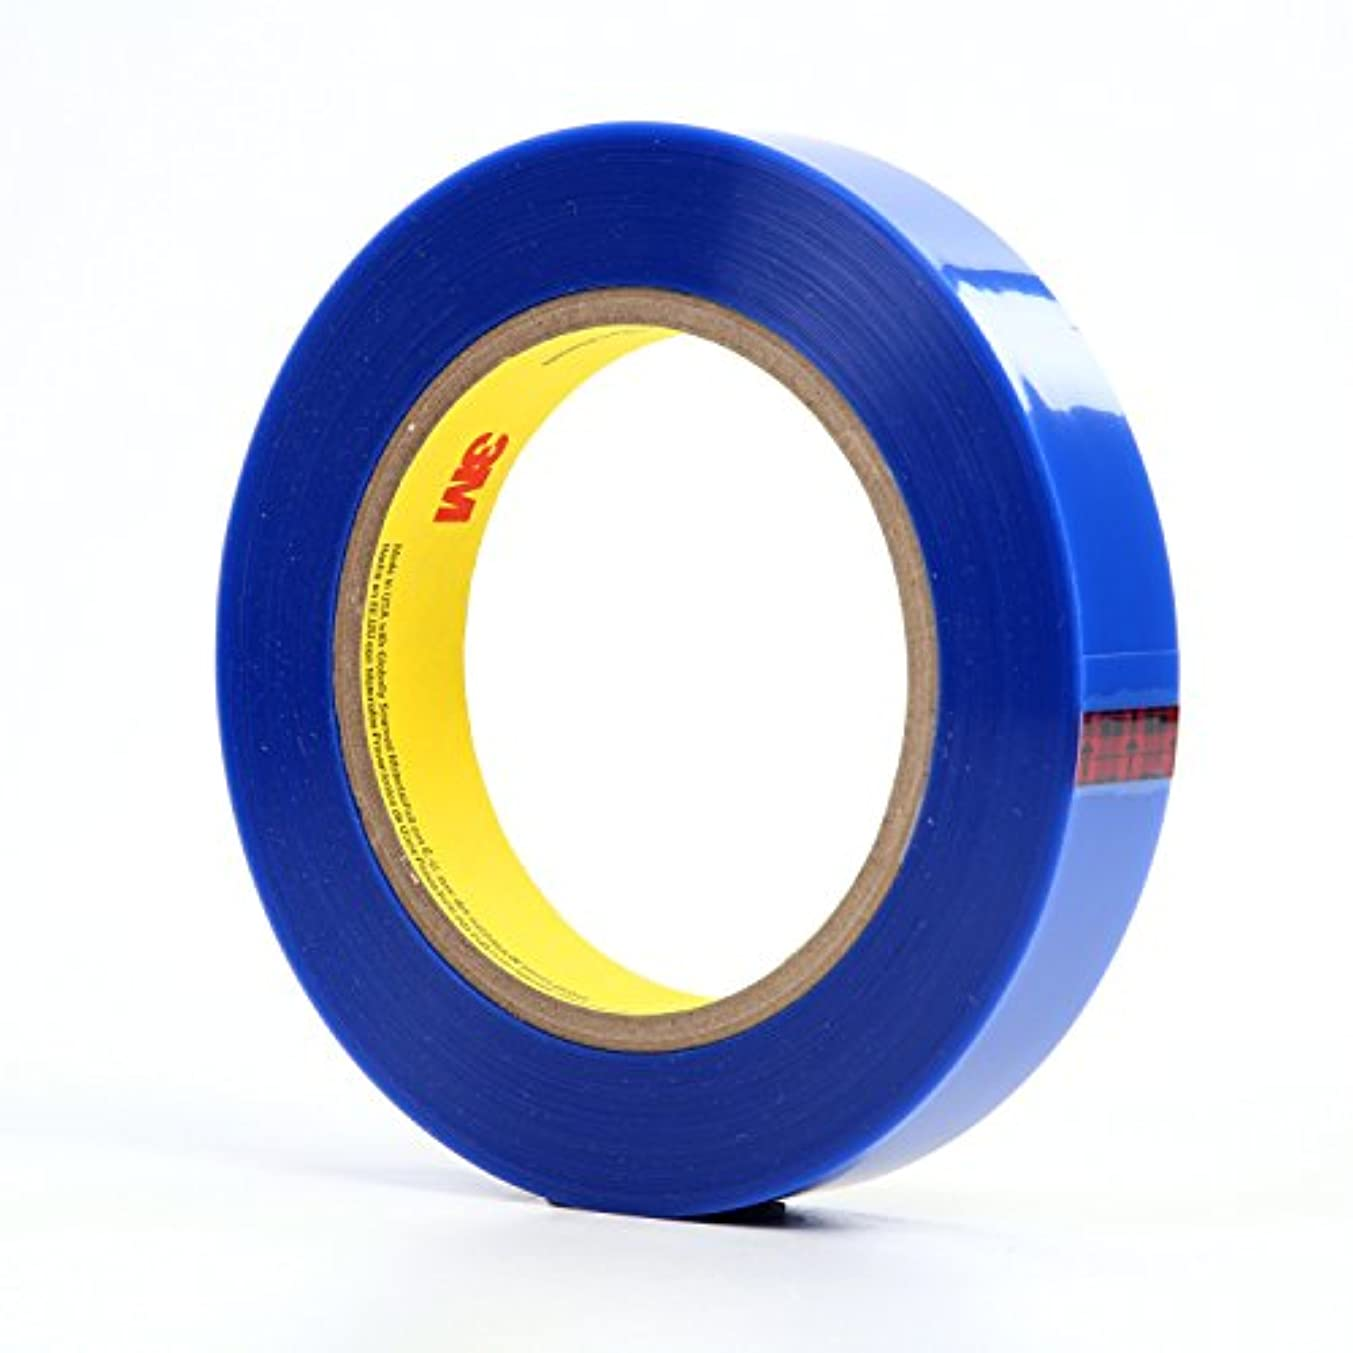 3M 92776-case Polyester Tape 8902 Blue, 3/4